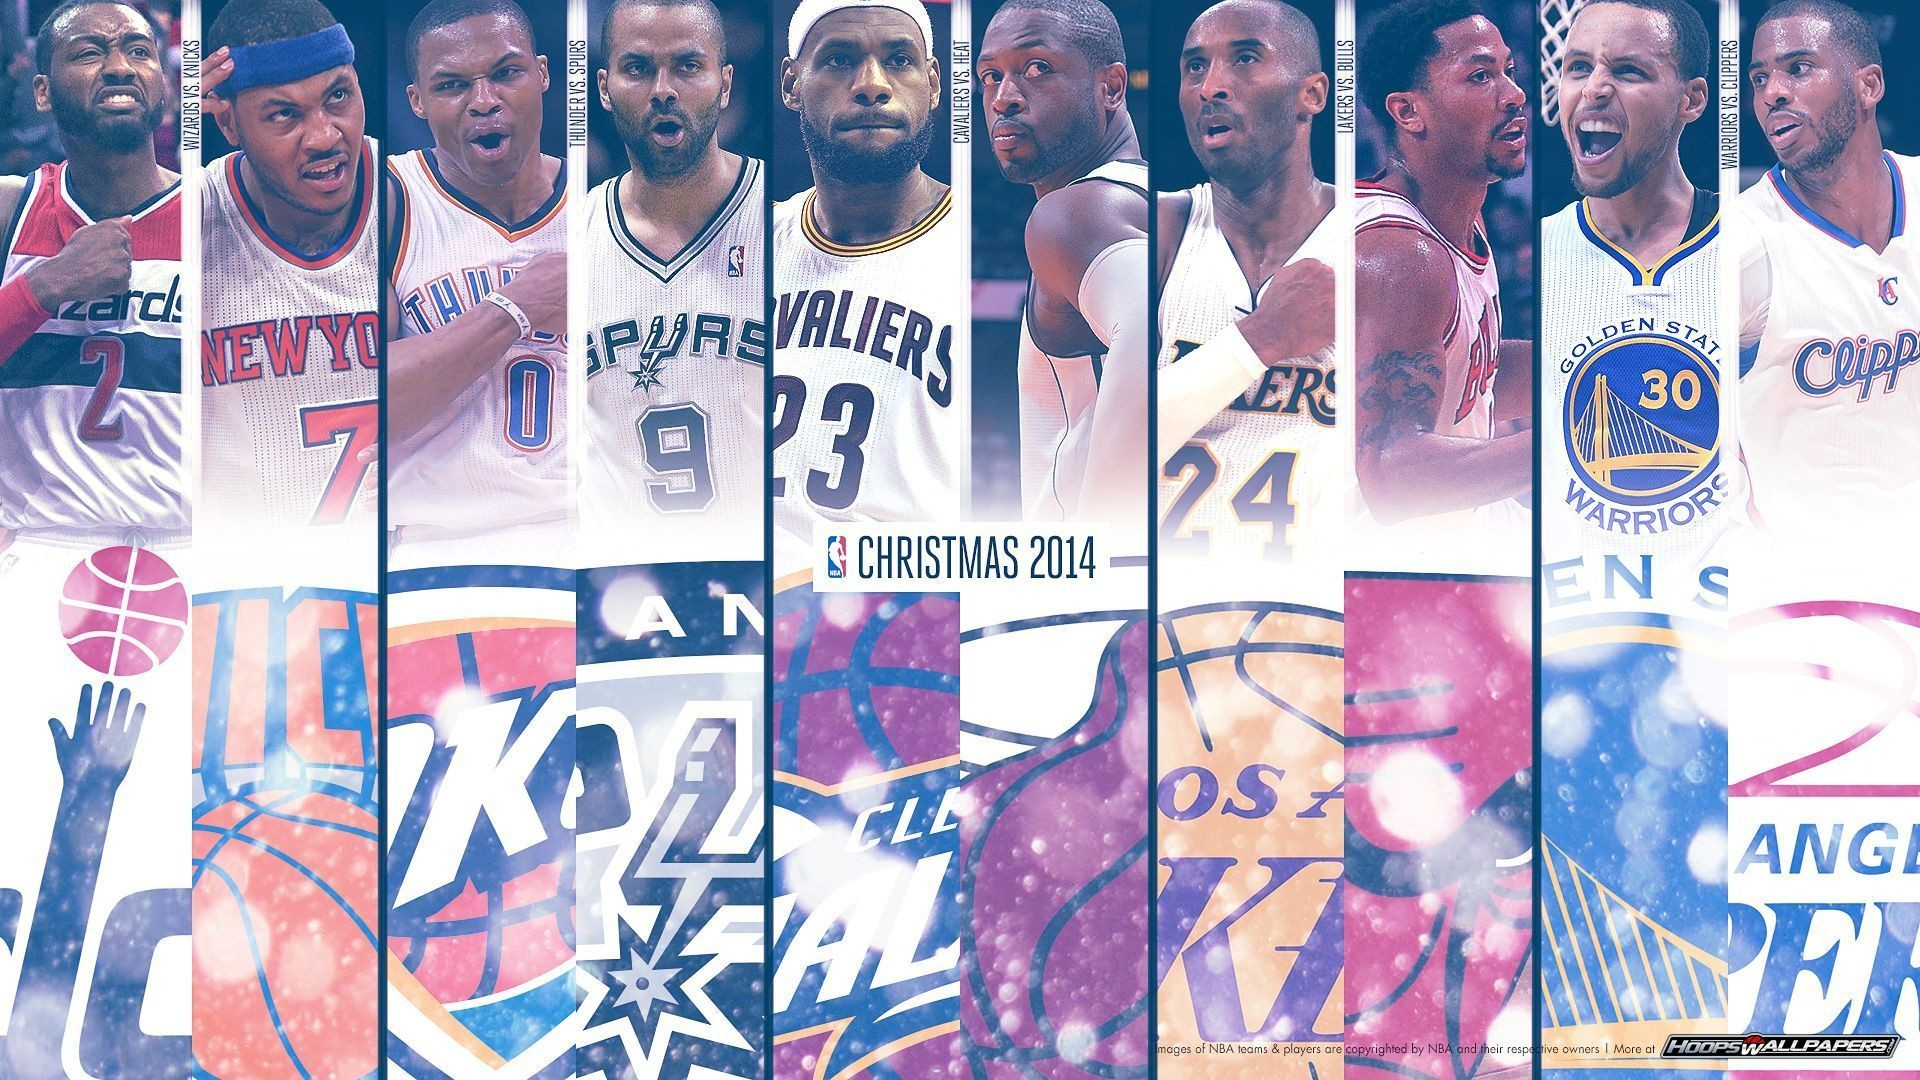 Res: 1920x1080, Free NBA wallpapers at HoopsWallpapers.com; Newest NBA and .